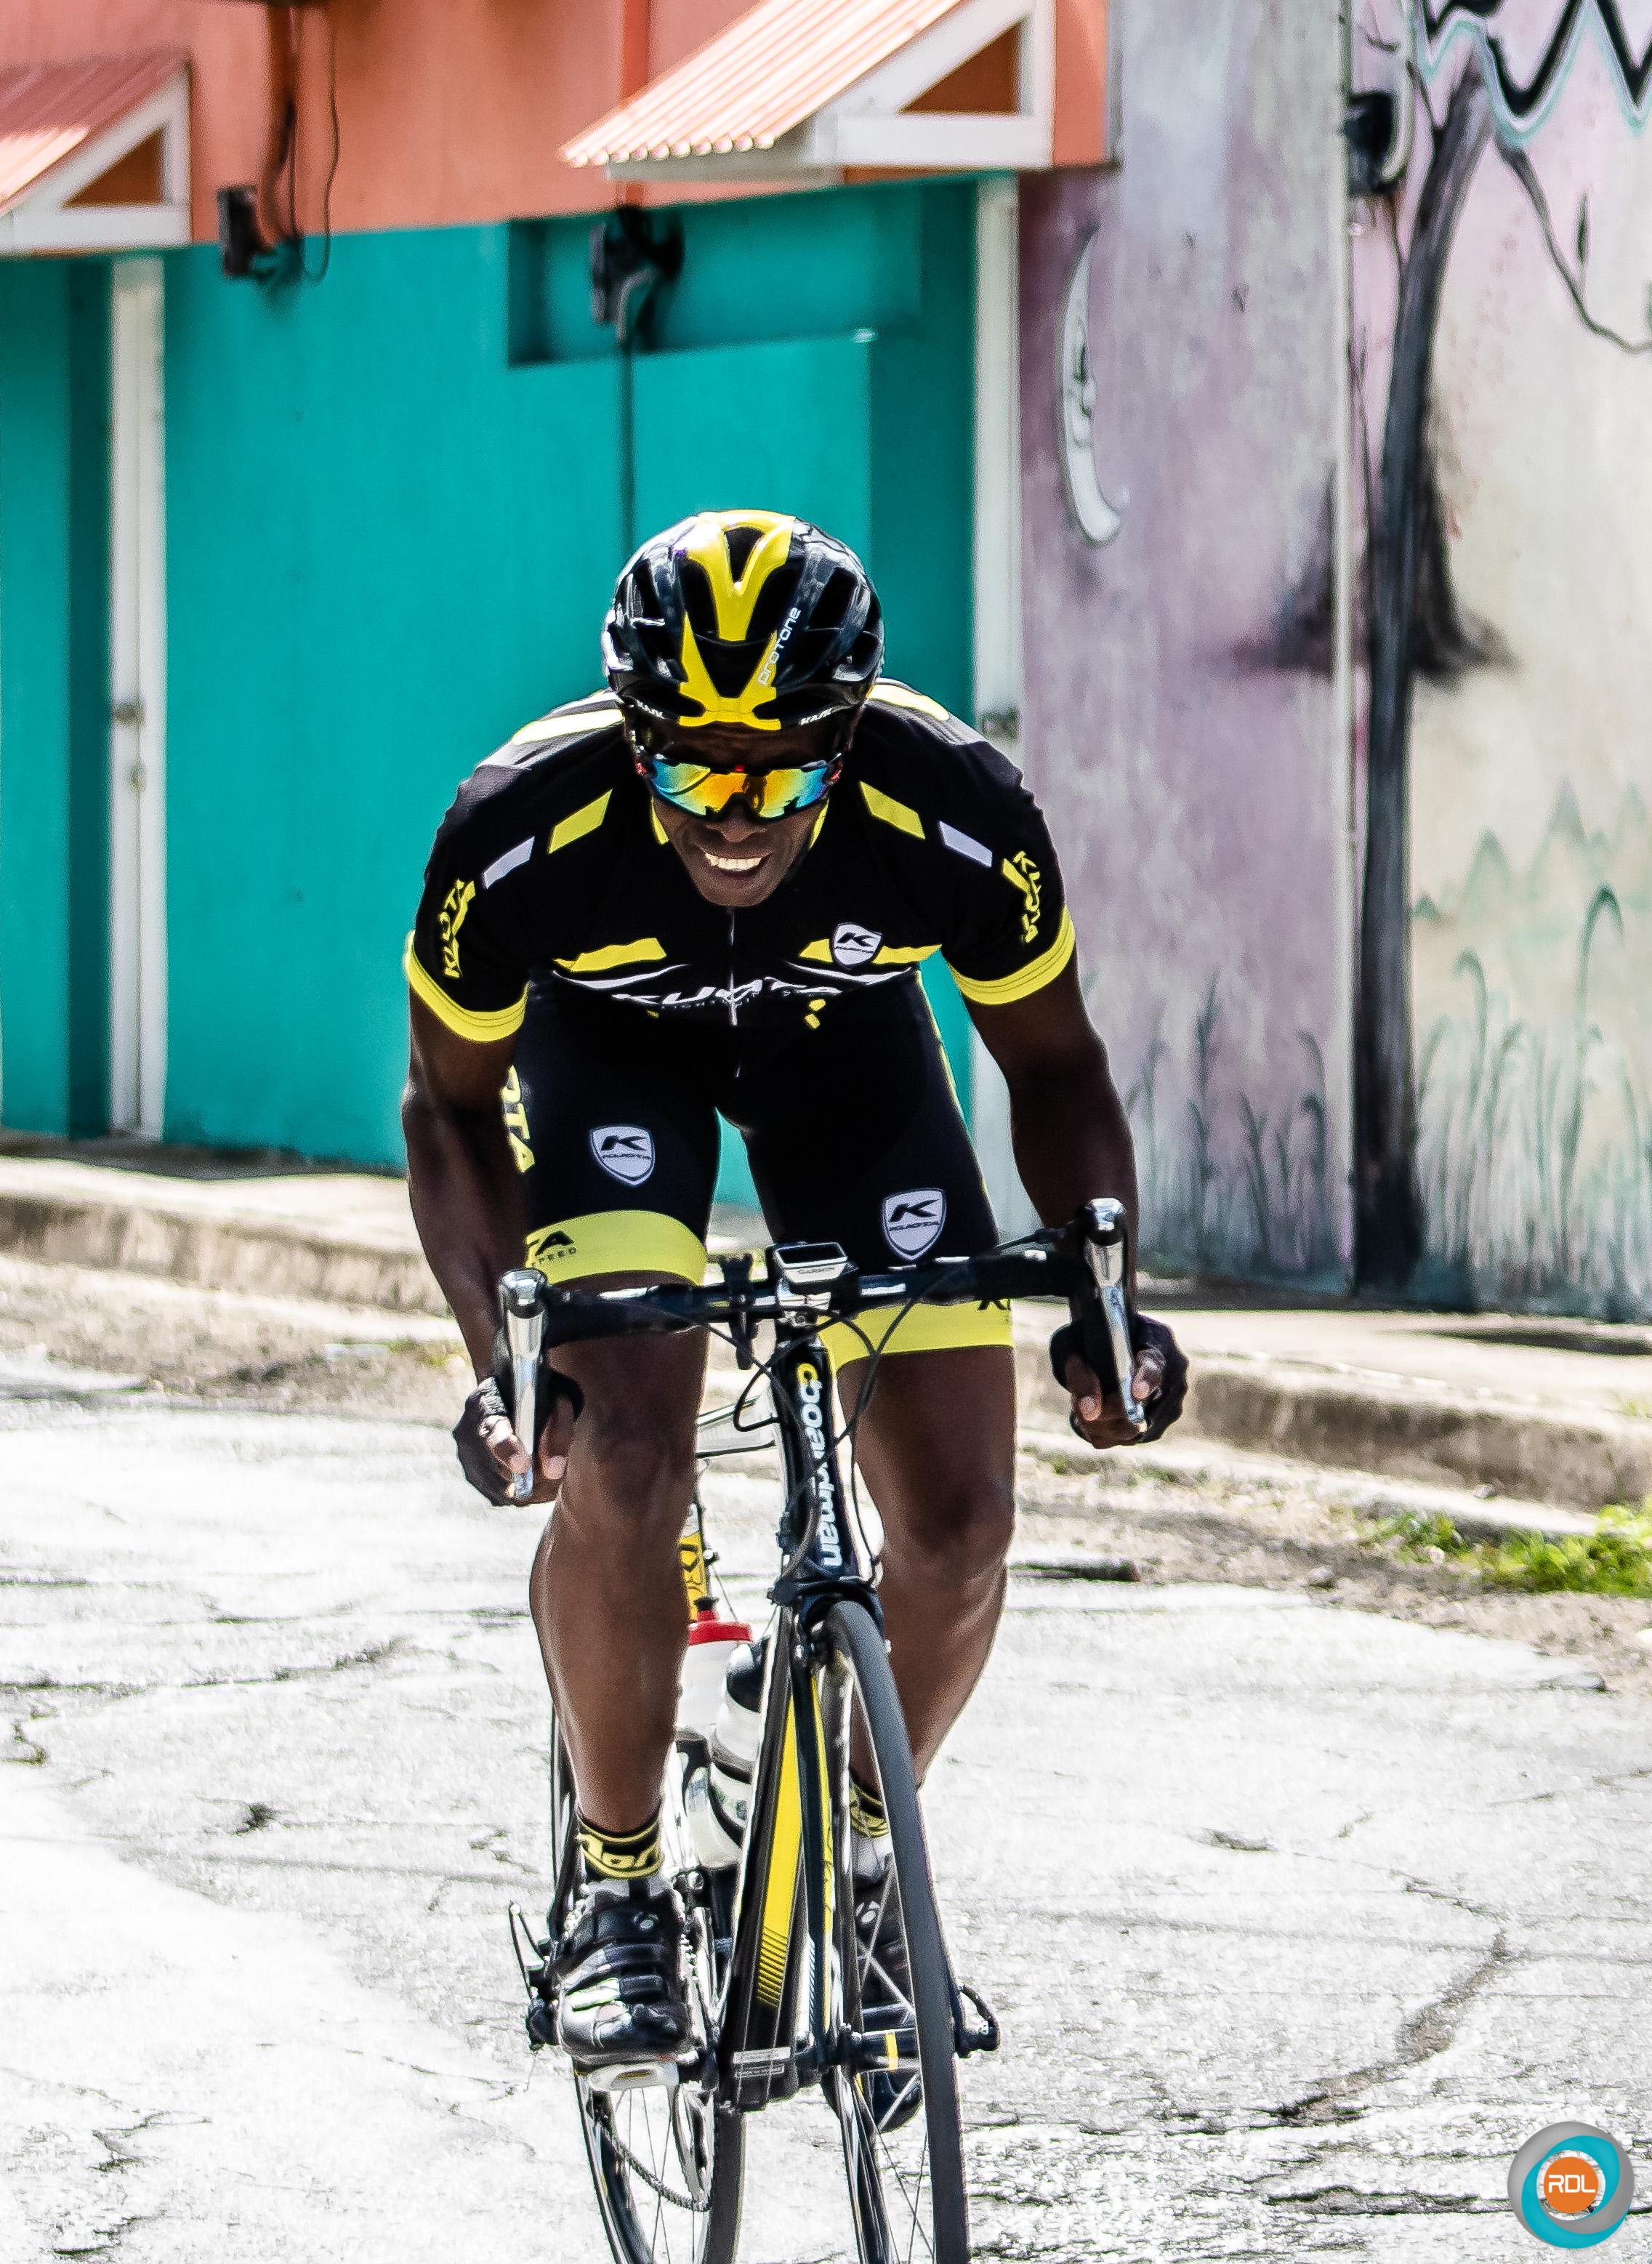 Independent cyclist Alan Codogan finished second in the Masters 50 and over category behind first place winner Sedwin Jones.